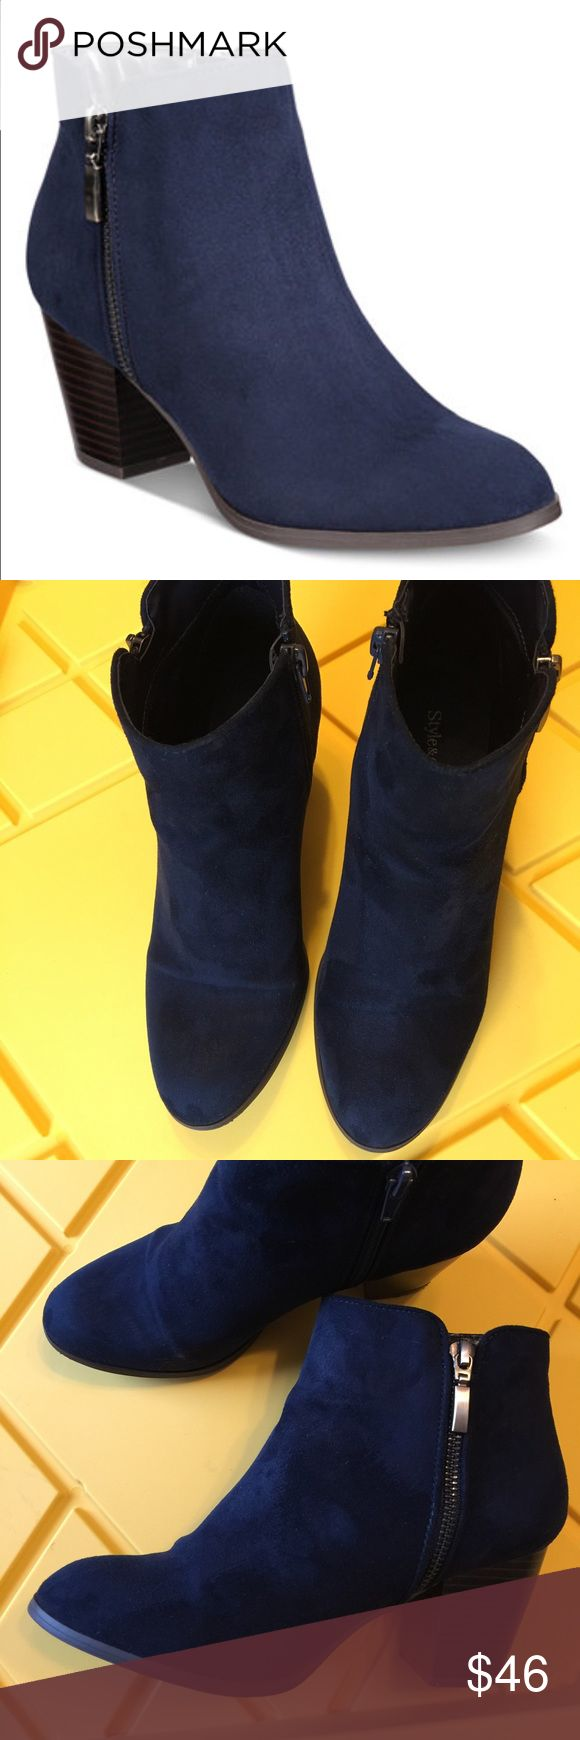 Navy blue zipper booties. Very stylish and chic short Jamila booties with metallic zipper. Used and has some mark but not noticeable once worn. Style & Co Shoes Ankle Boots & Booties